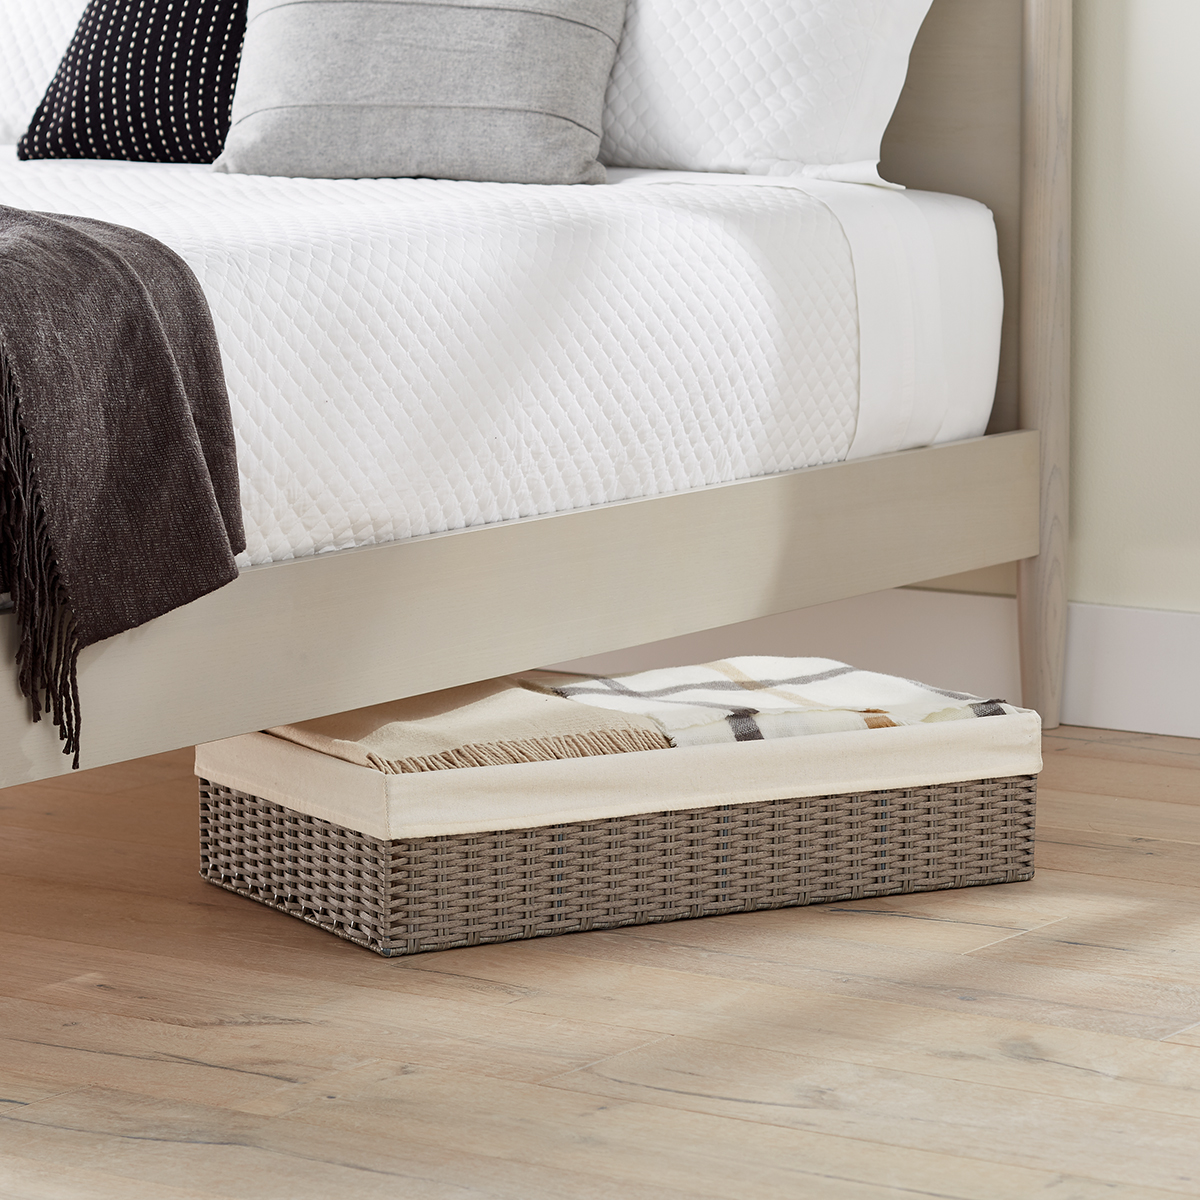 Grey Montauk Underbed Storage Bins